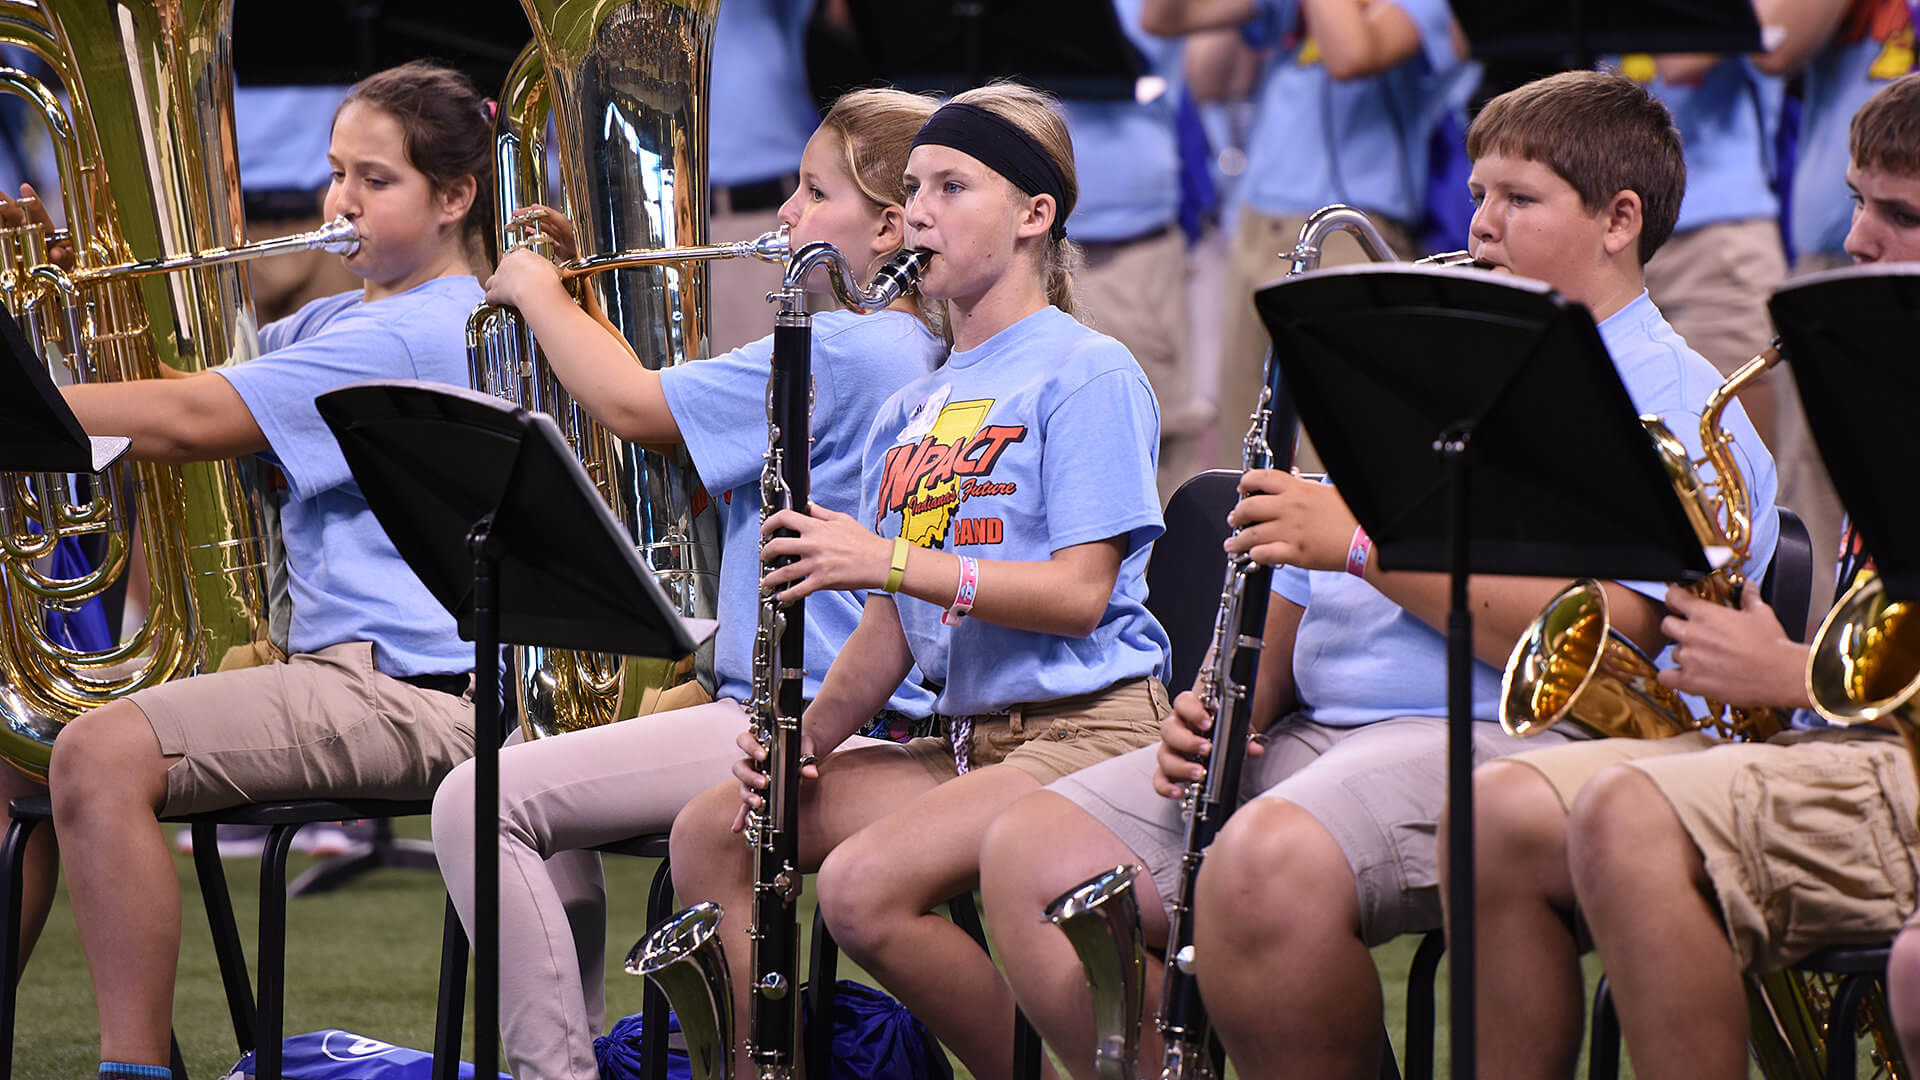 Four years in, INpact Band continues to inspire middle school musicians